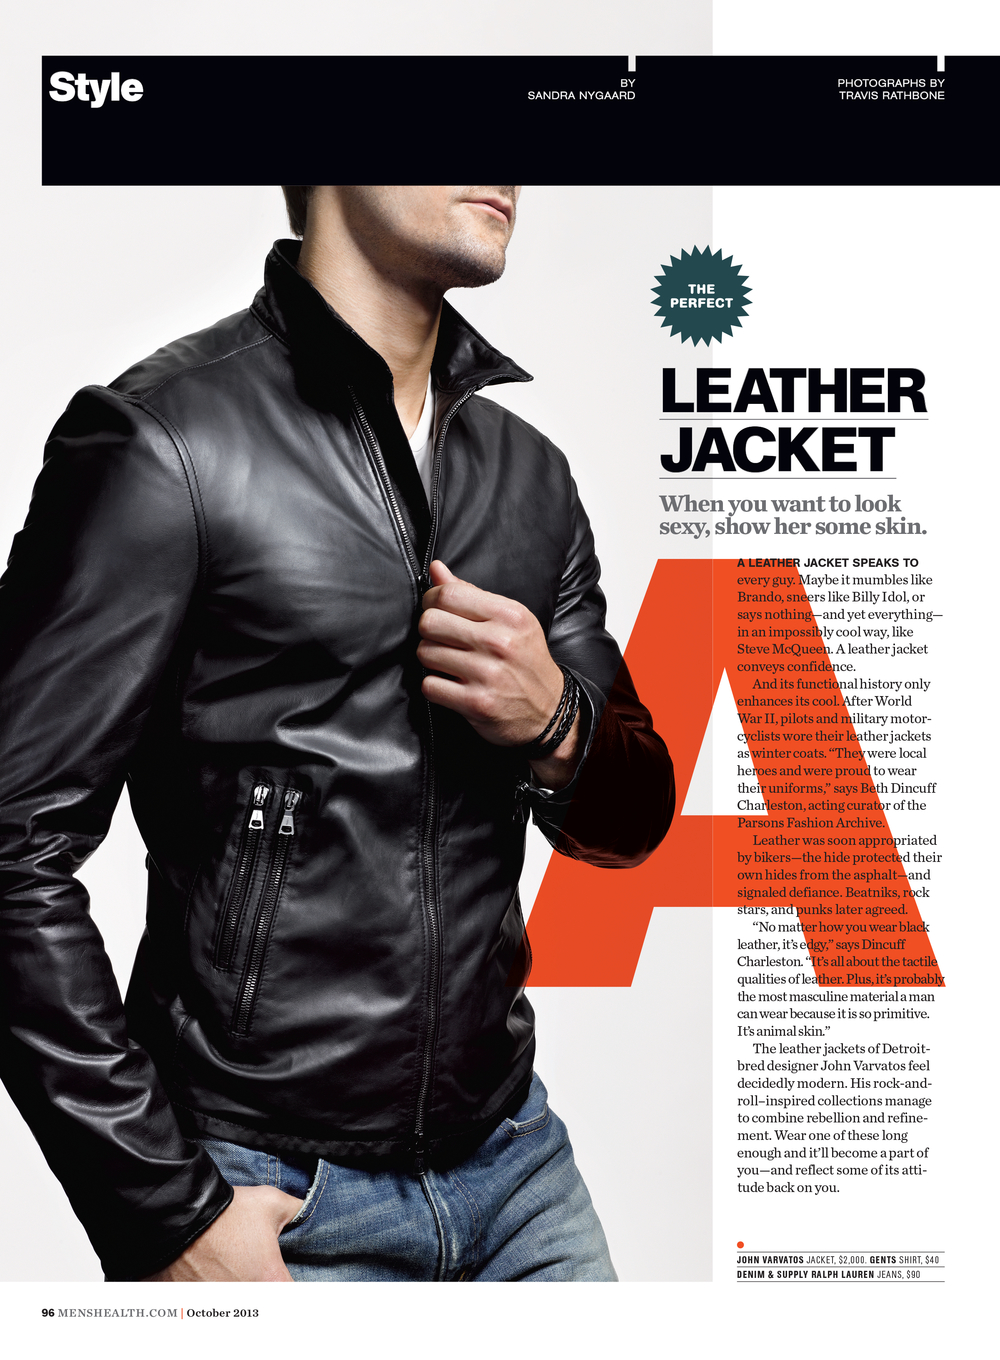 leather jacket 10 13.jpg